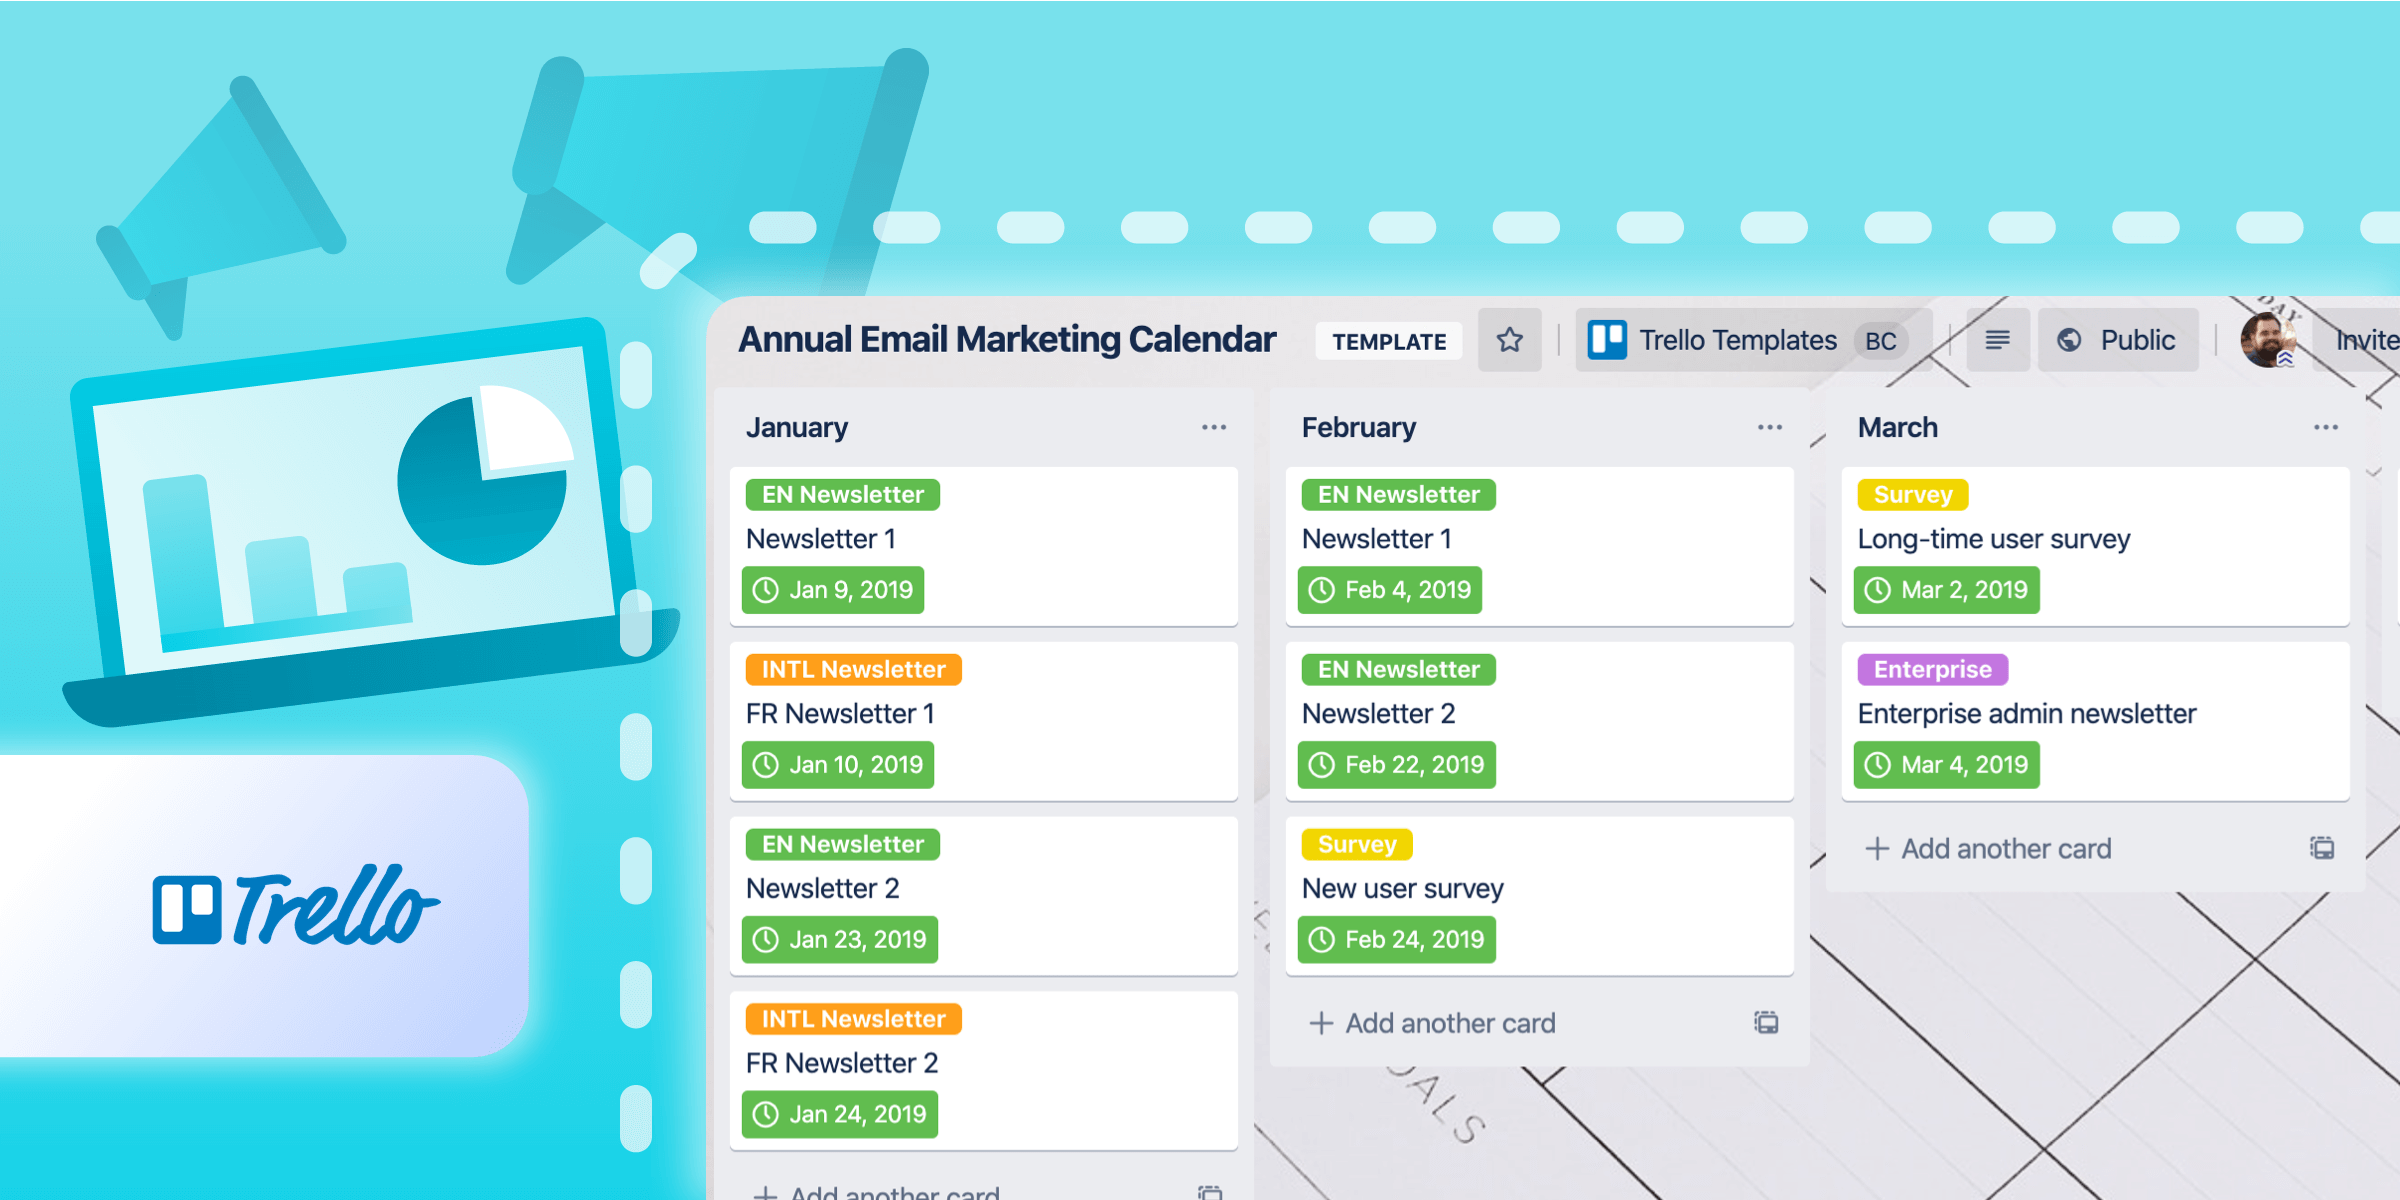 How To Visually Plan Your Email Calendar With Trello